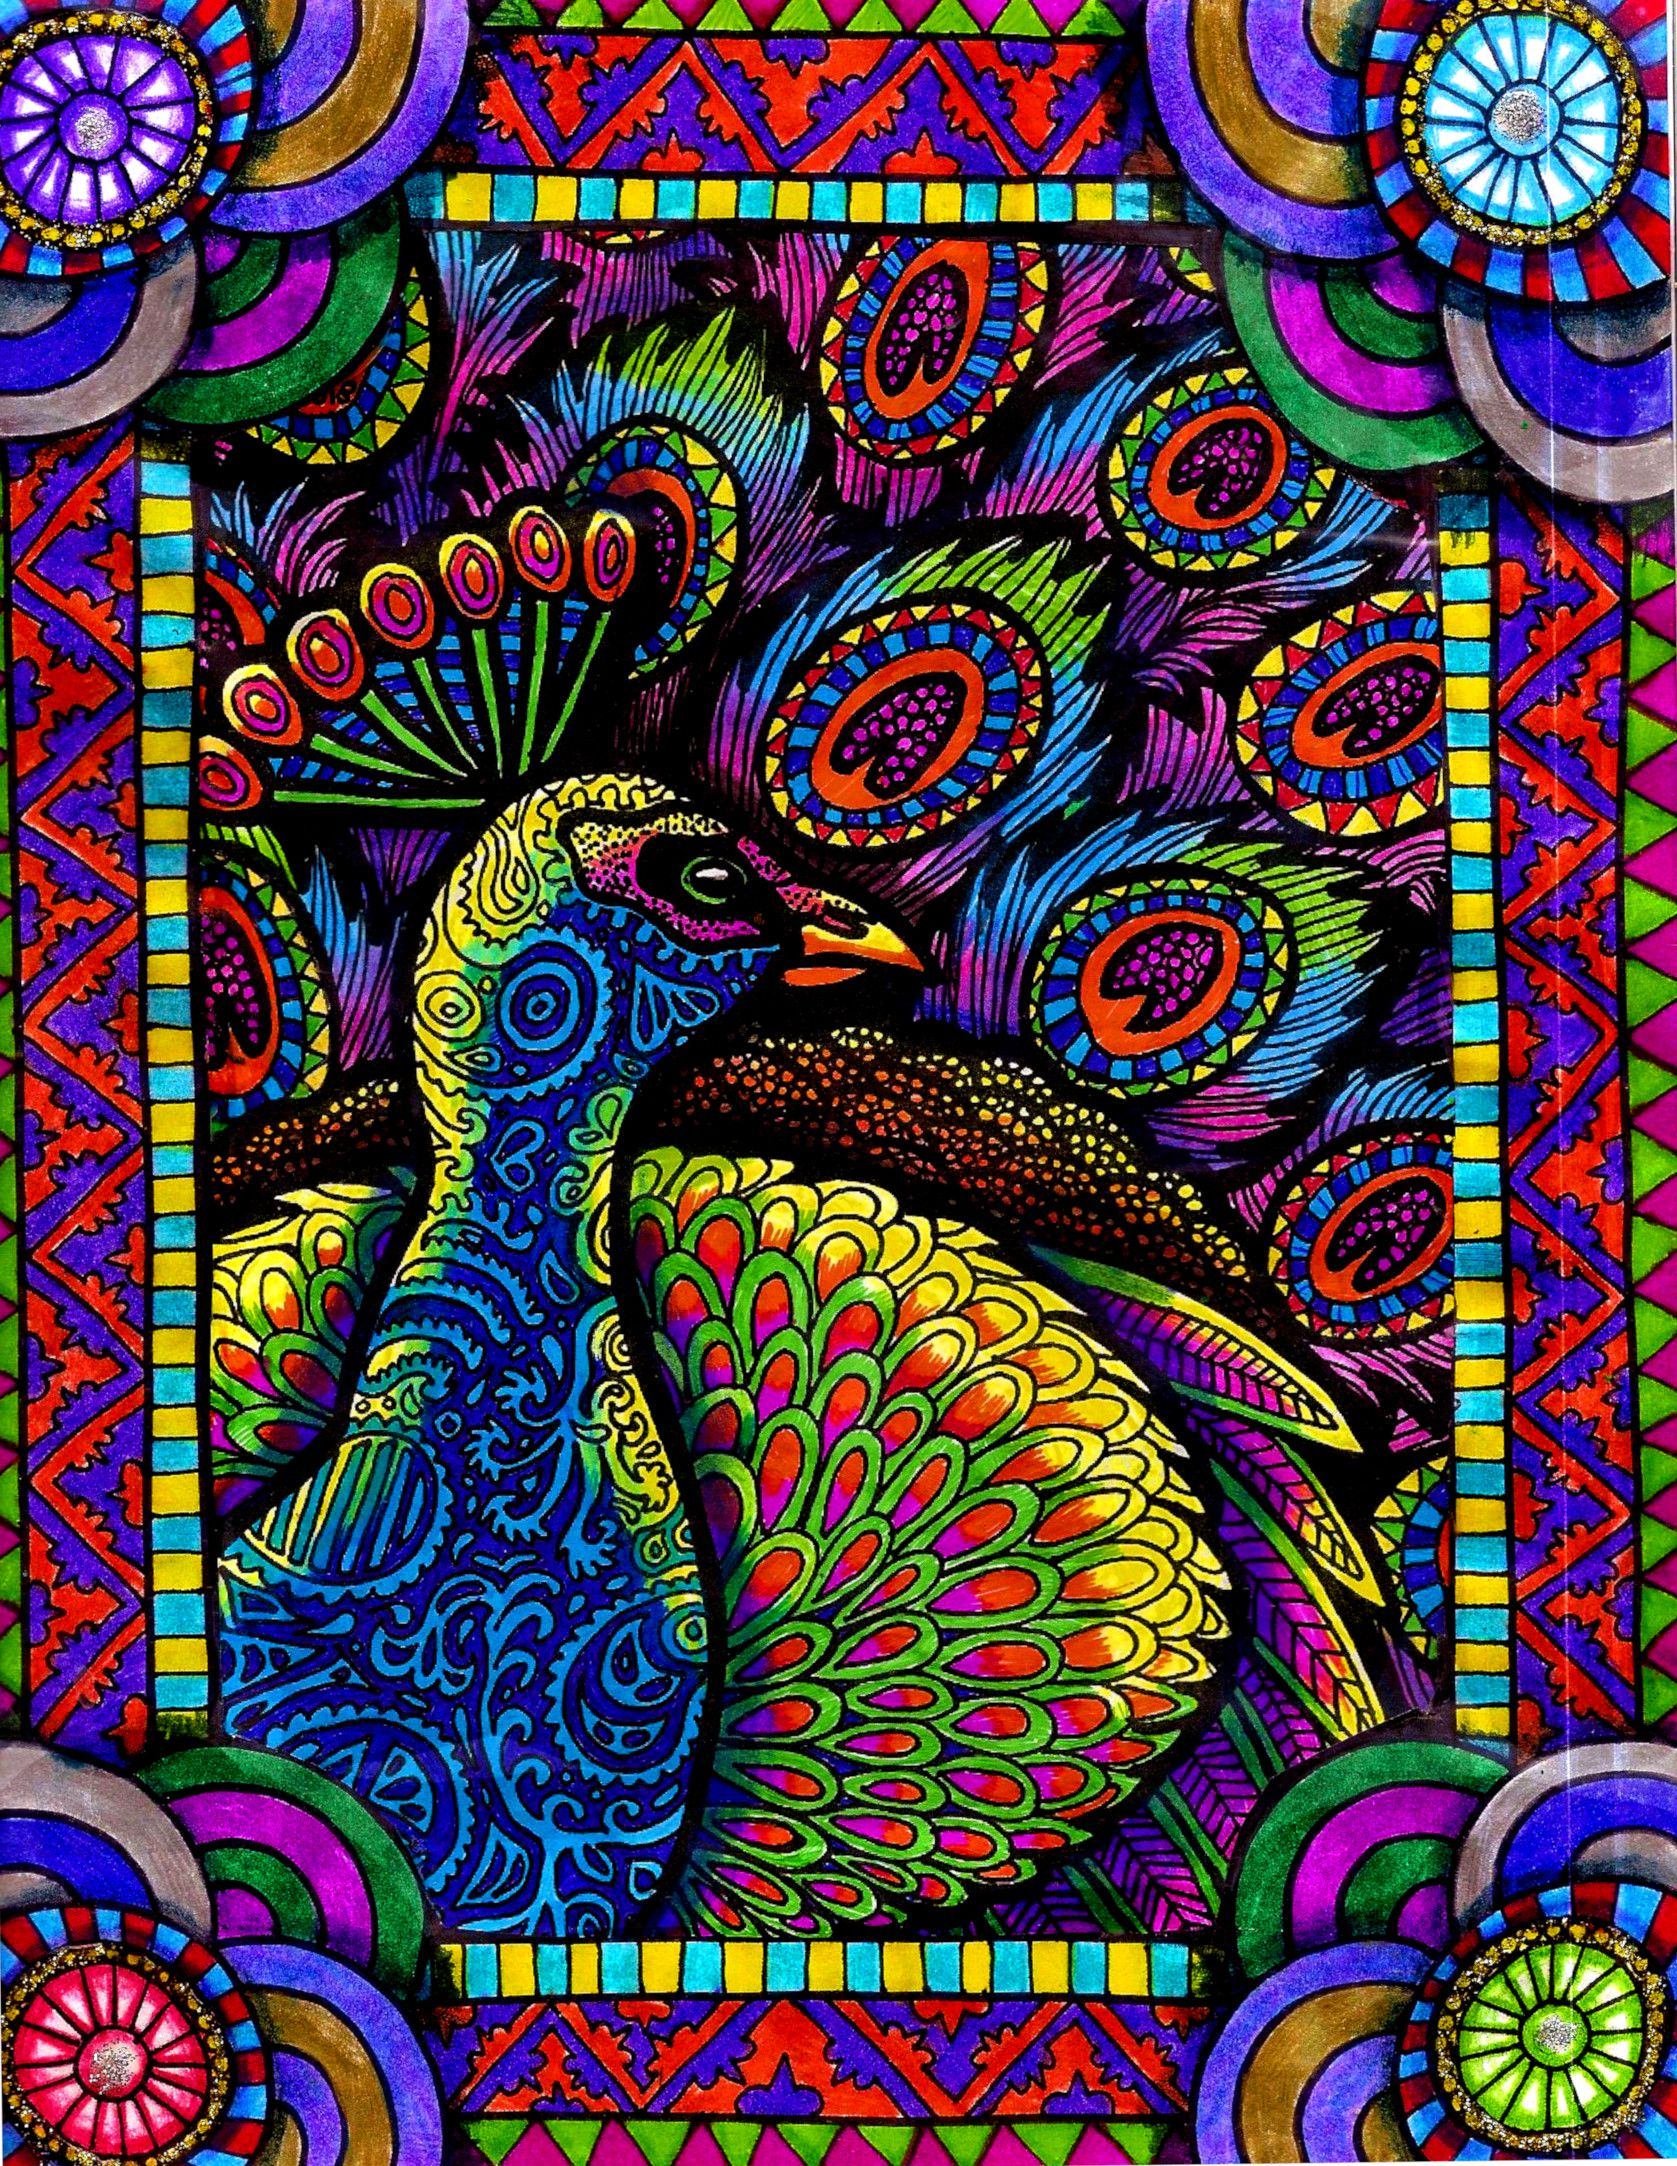 abstractart zentangle birdart hgcreativearts colorfulart drawing peacock